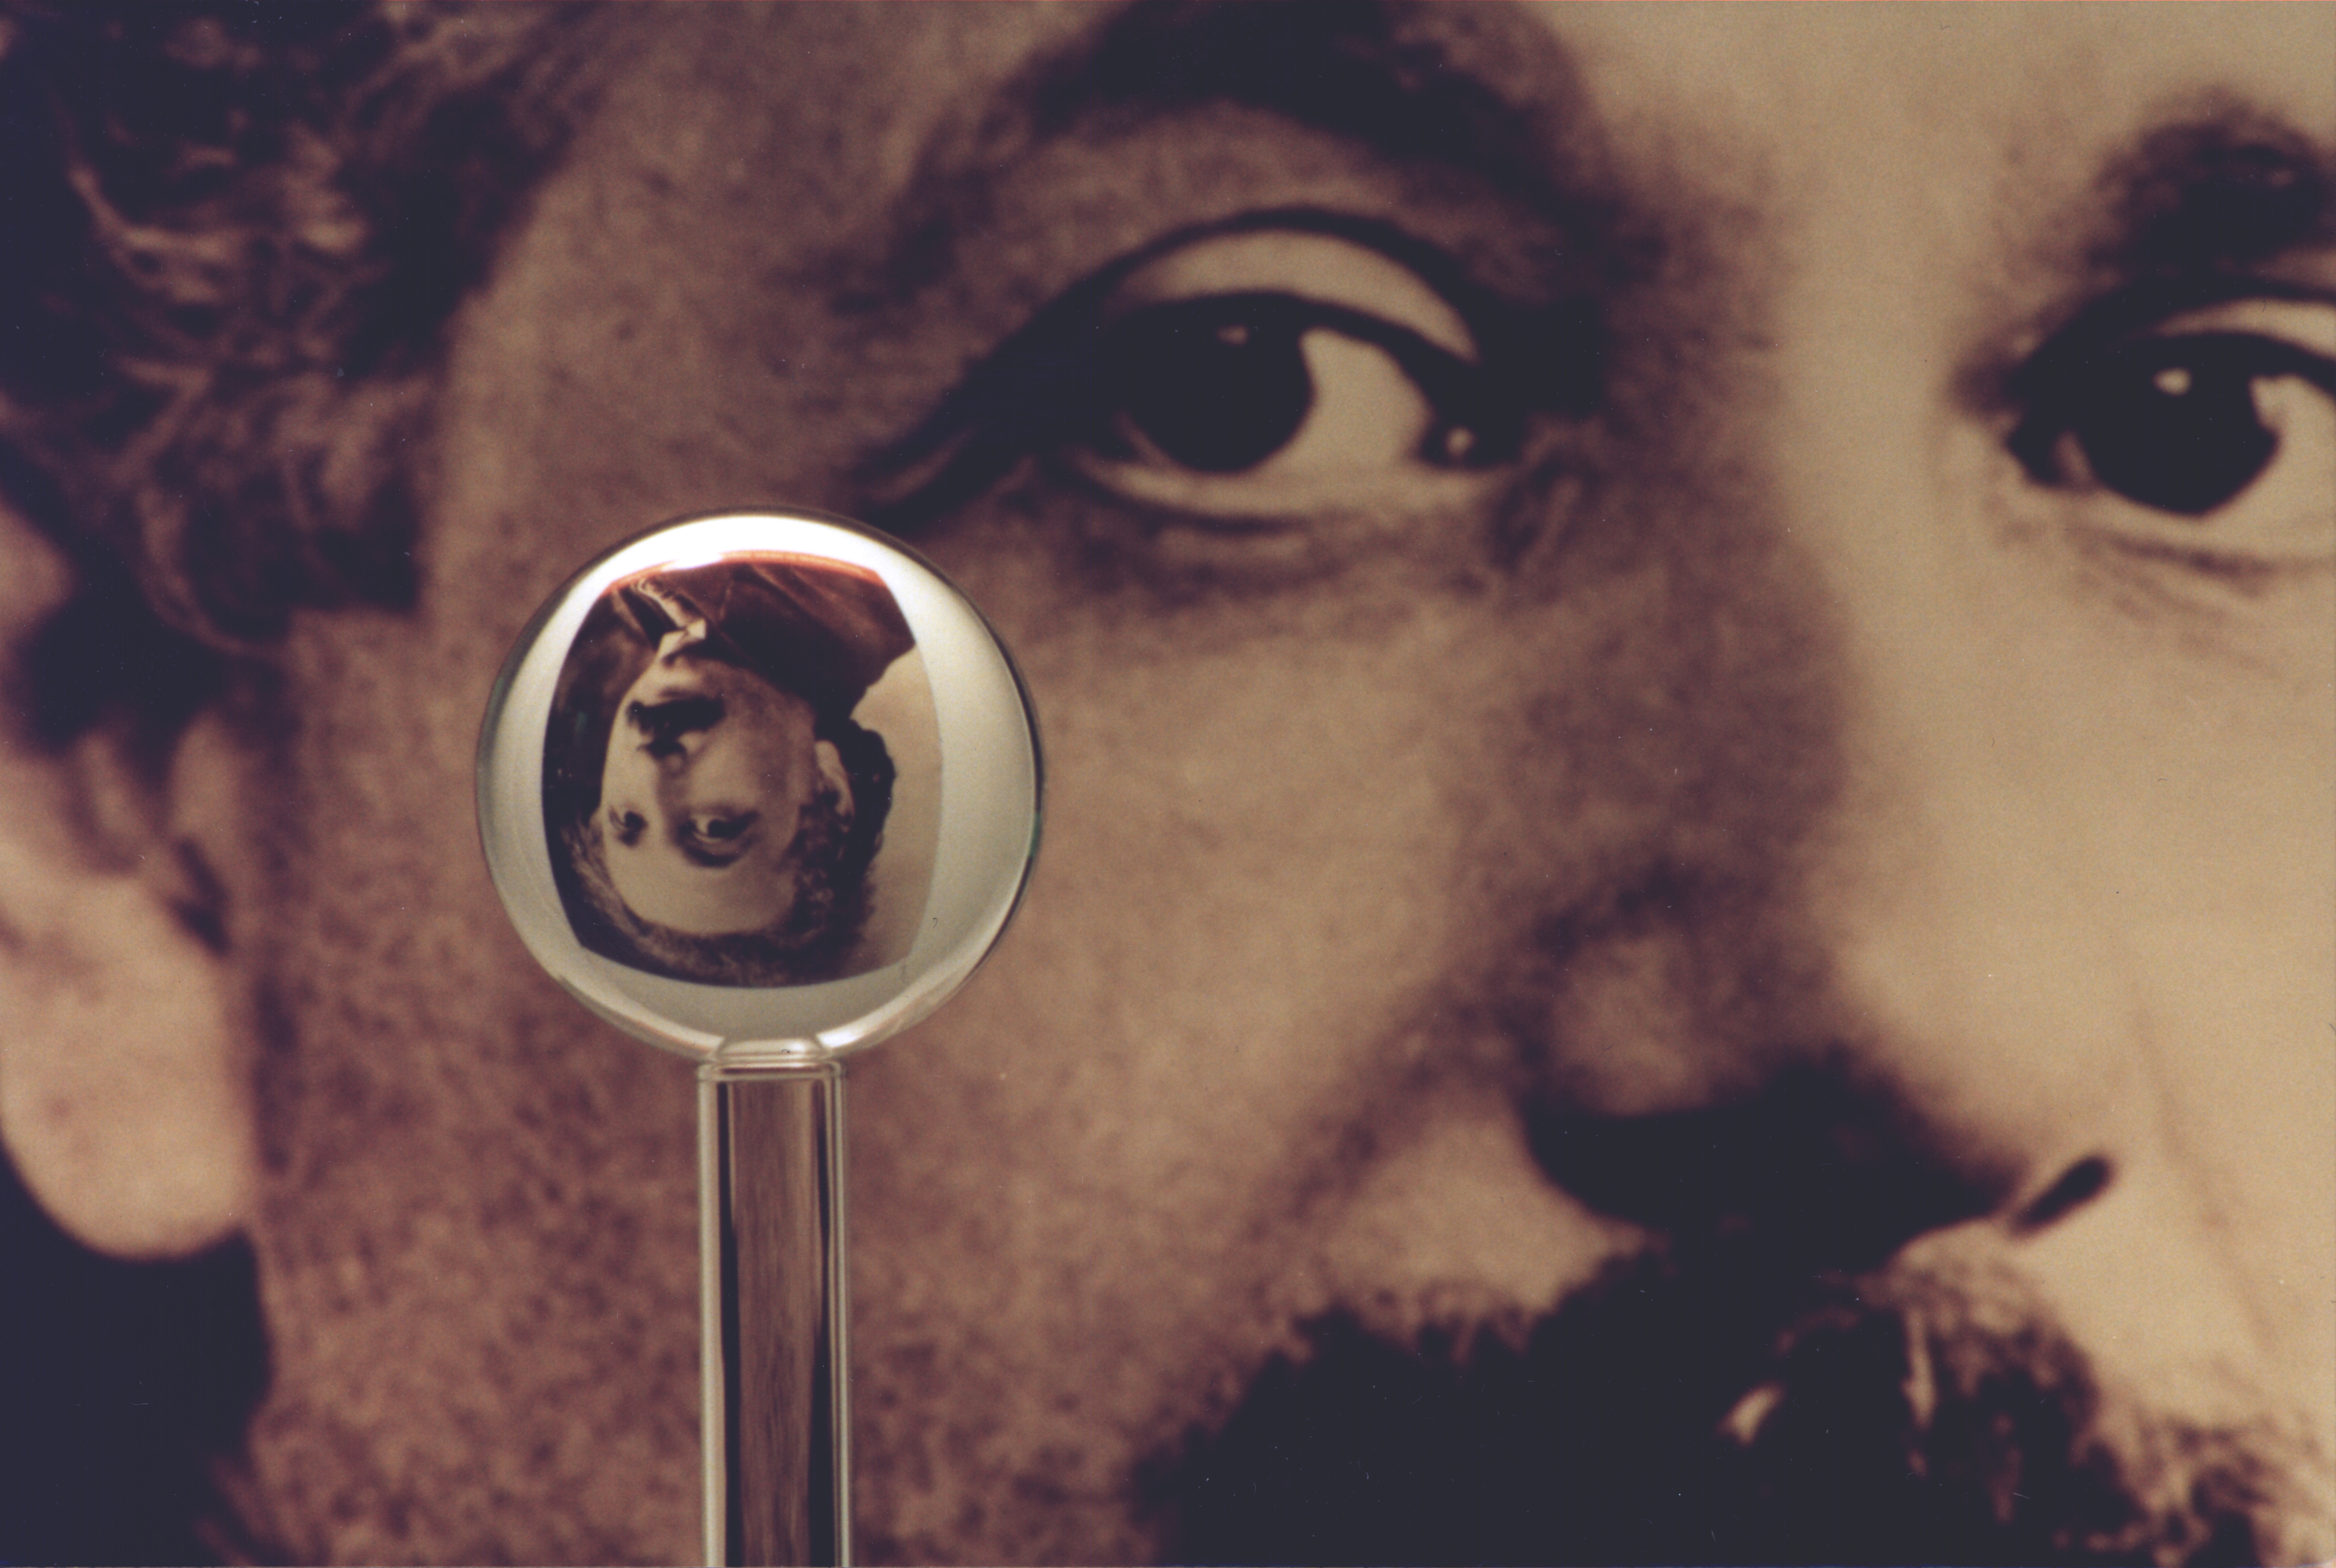 An Image Of One Of The Most Accurate Humanmade Spheres, As It Refracts The  Image Of Einstein In The Background This Sphere Was A Fused Quartz  Gyroscope